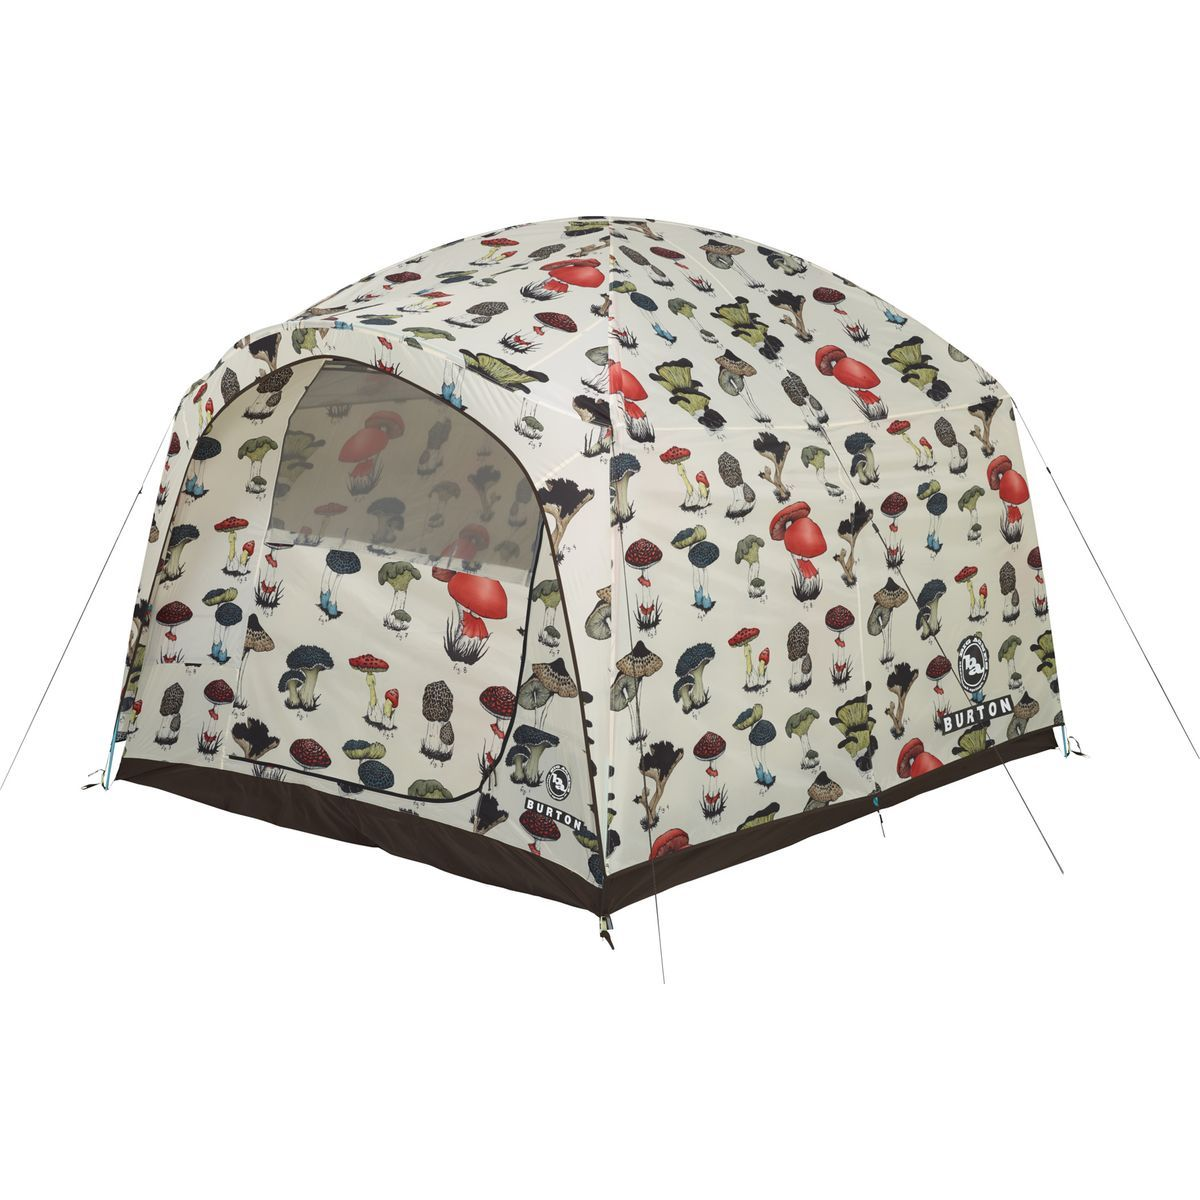 Burton Stone Hut Tent 6-Person 3-Season Shrooms  sc 1 st  Pinterest & Burton Stone Hut Tent: 6-Person 3-Season Shrooms | Get Out There ...